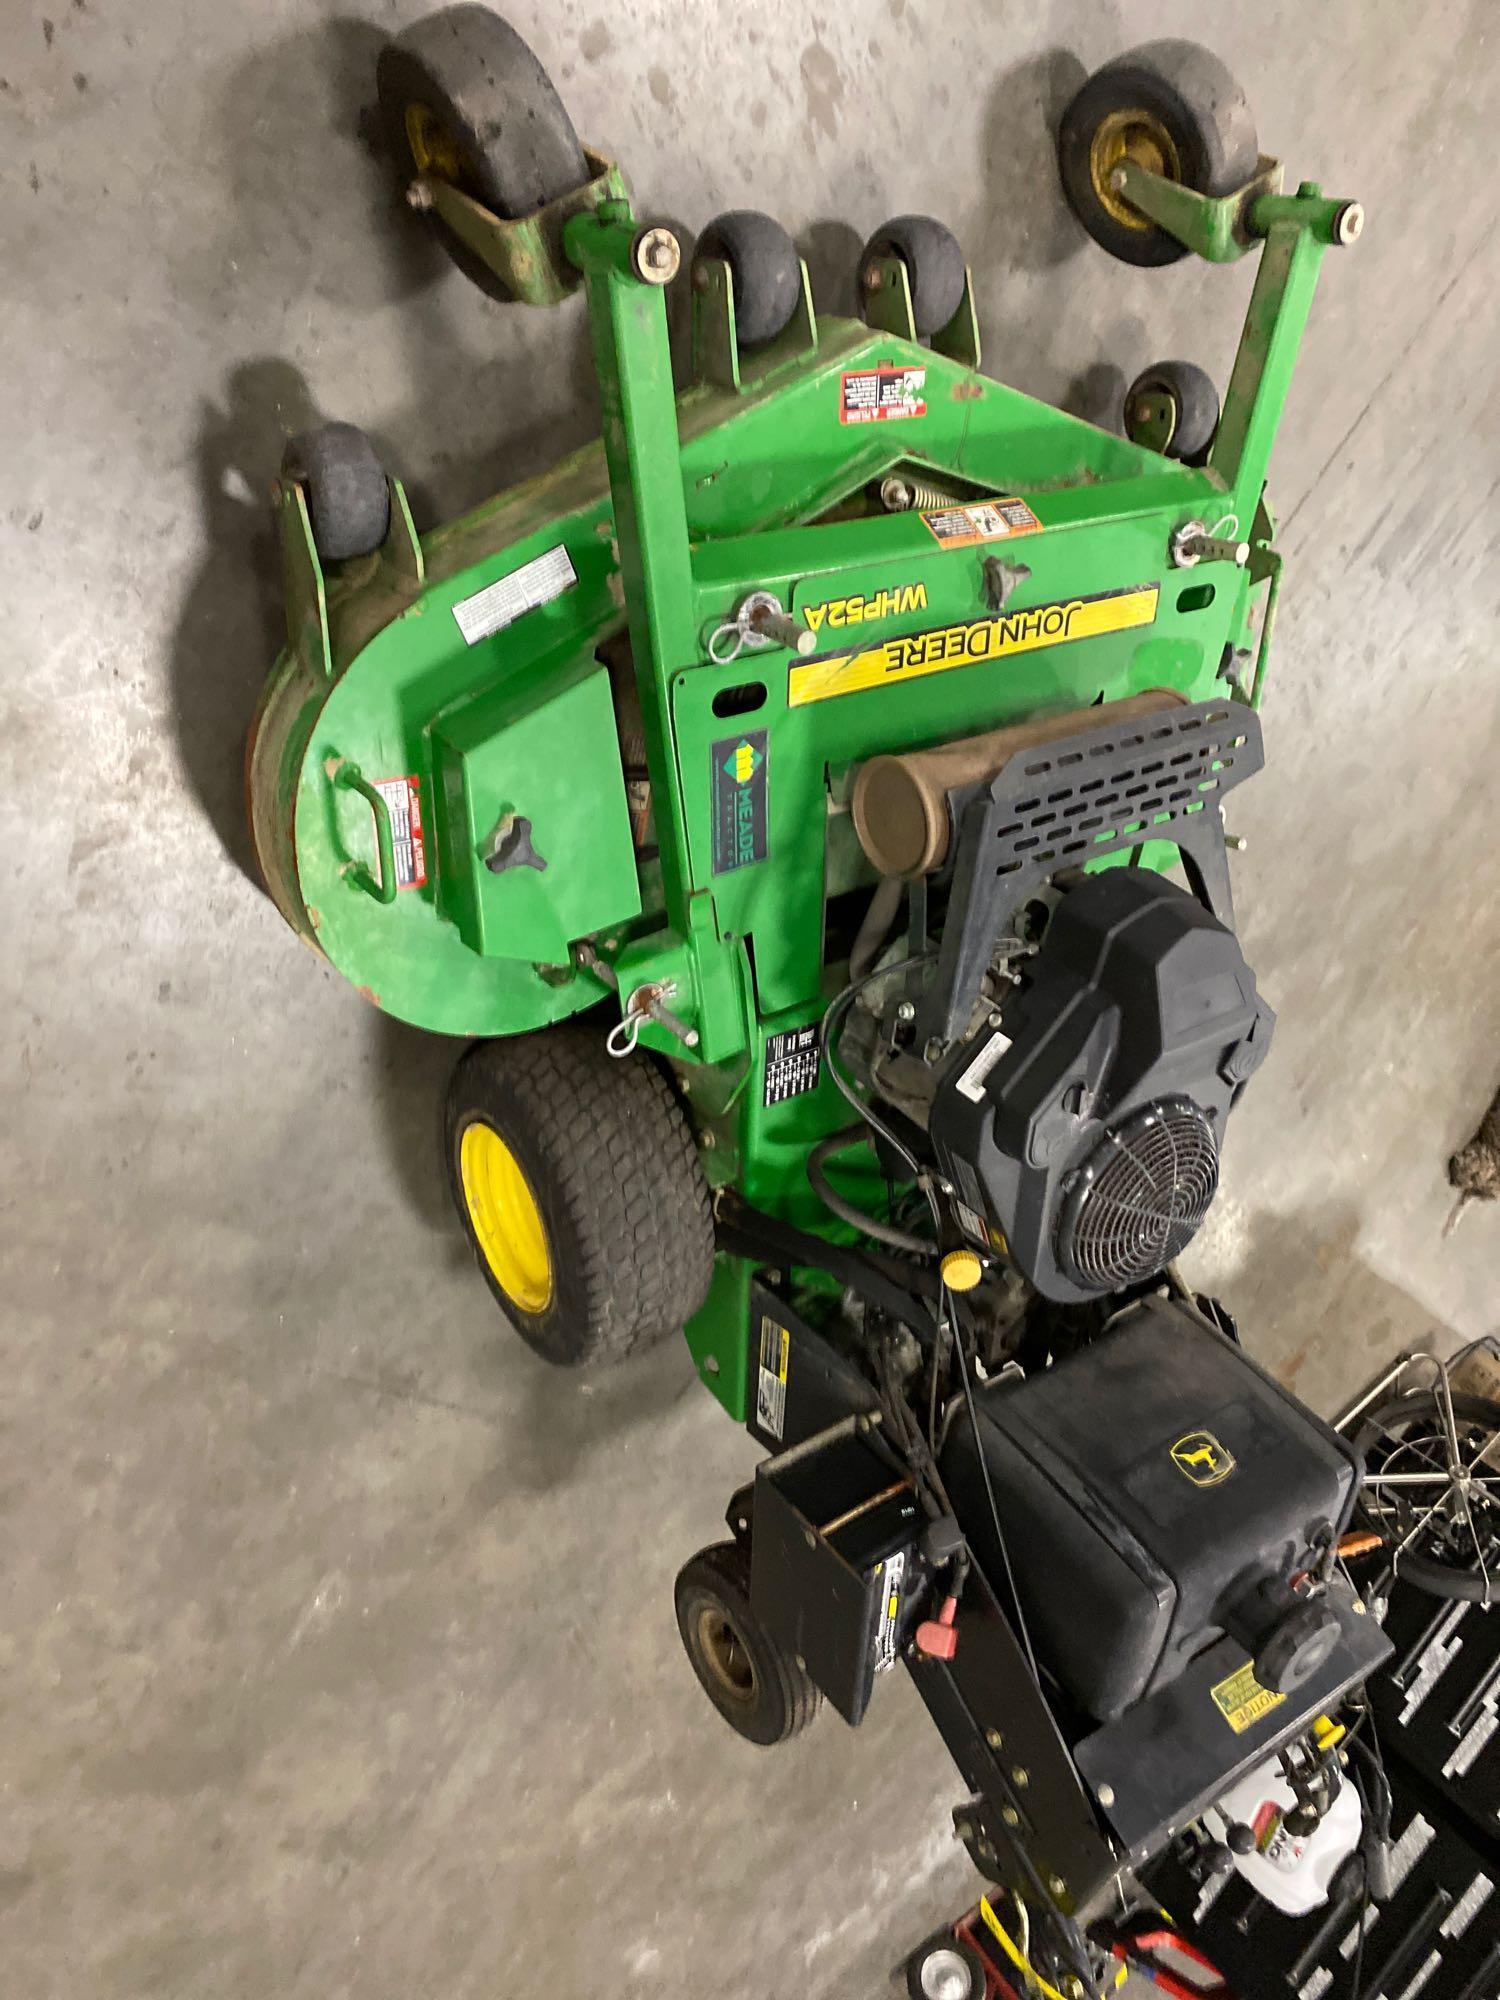 """JOHN DEERE WHP52A MOWER, 52"""" DECK, RUNS AND OPERATES - Image 2 of 7"""